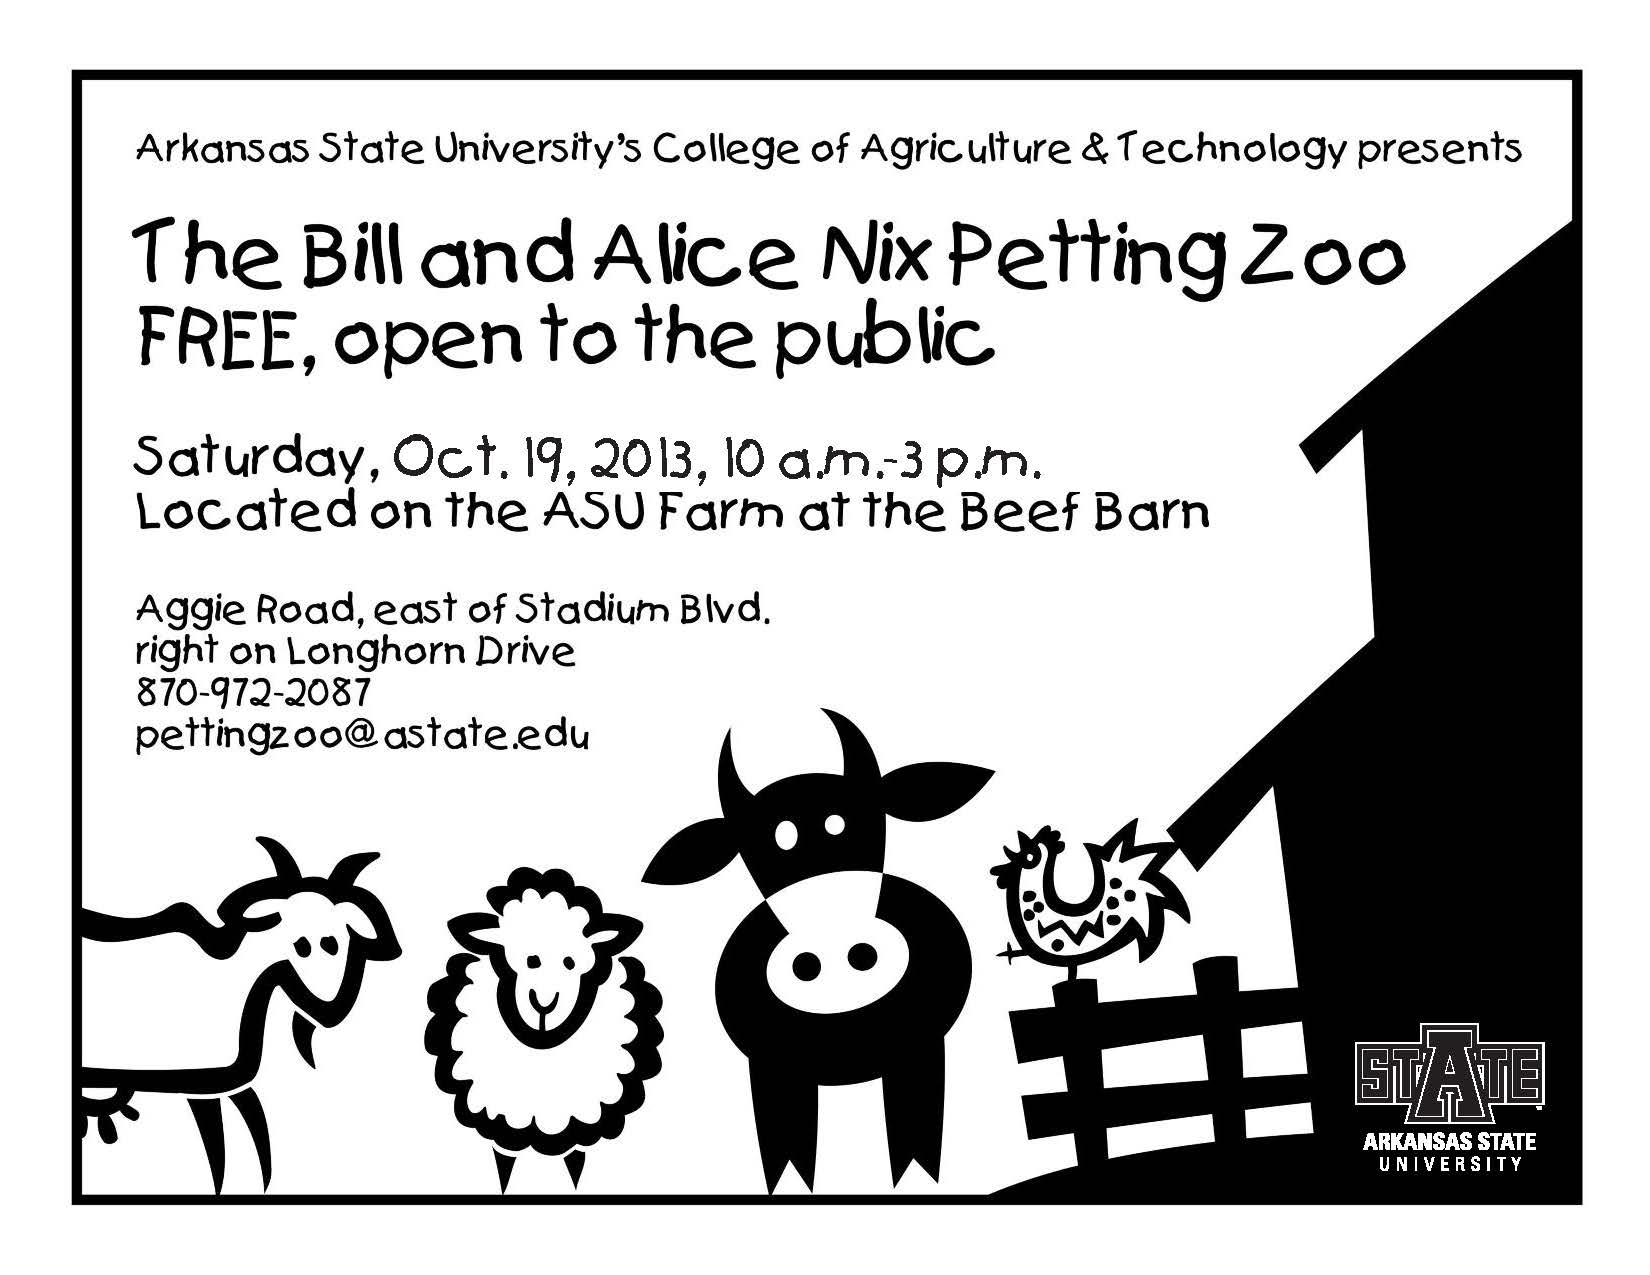 Bill and Alice Nix Petting Zoo Saturday October 19 2013